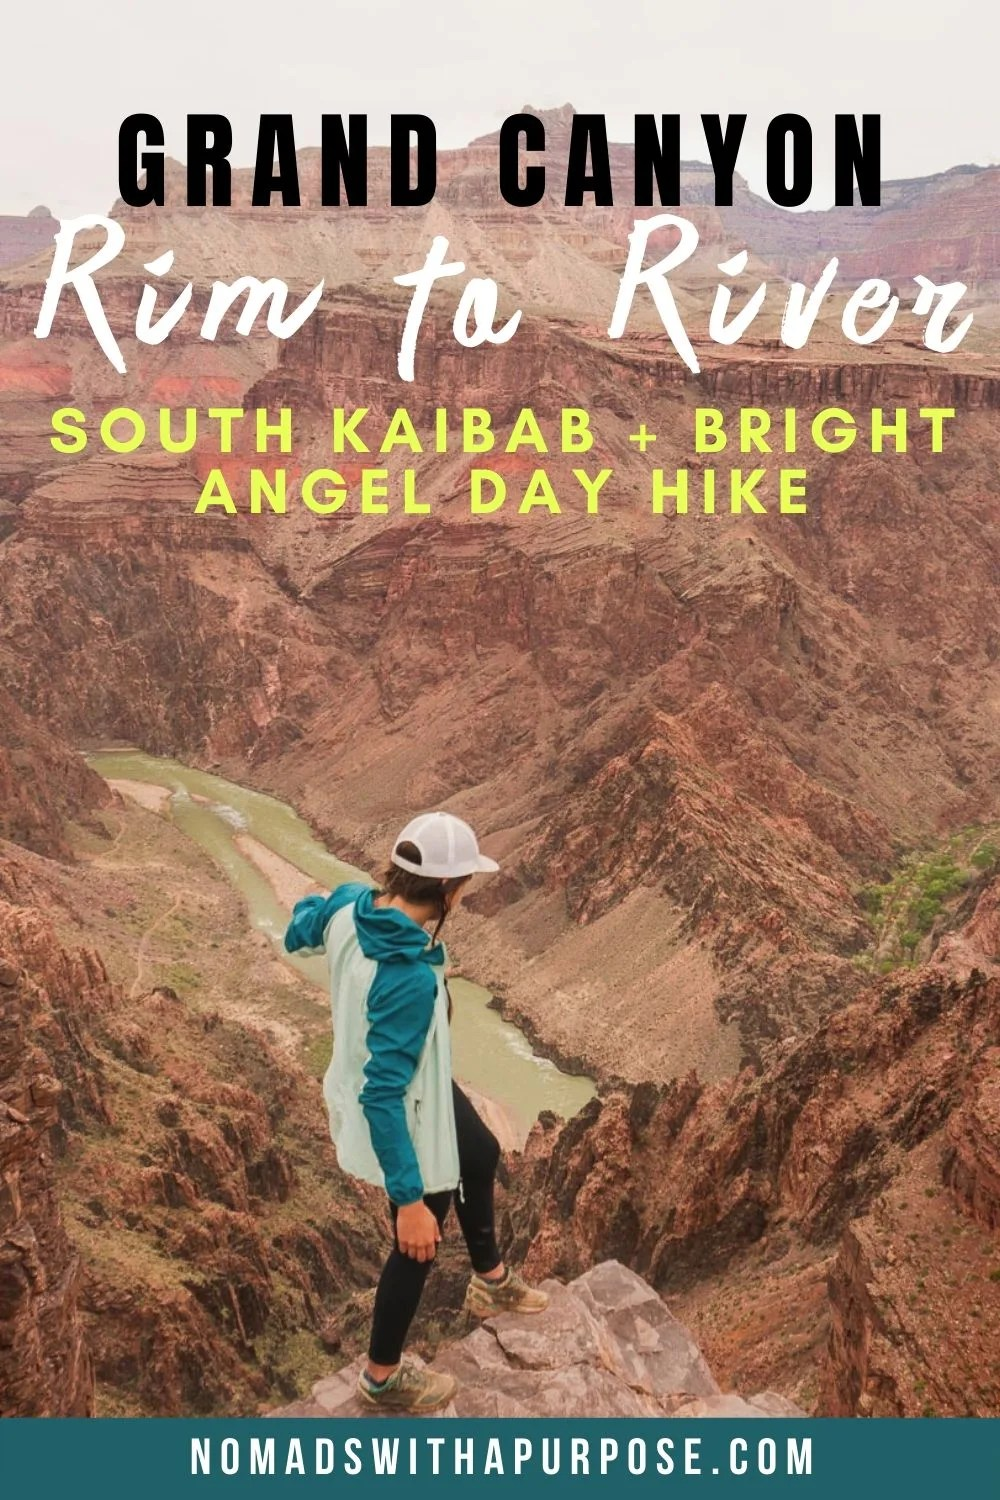 Grand Canyon Rim to River: South Kaibab + Bright Angel Day Hike